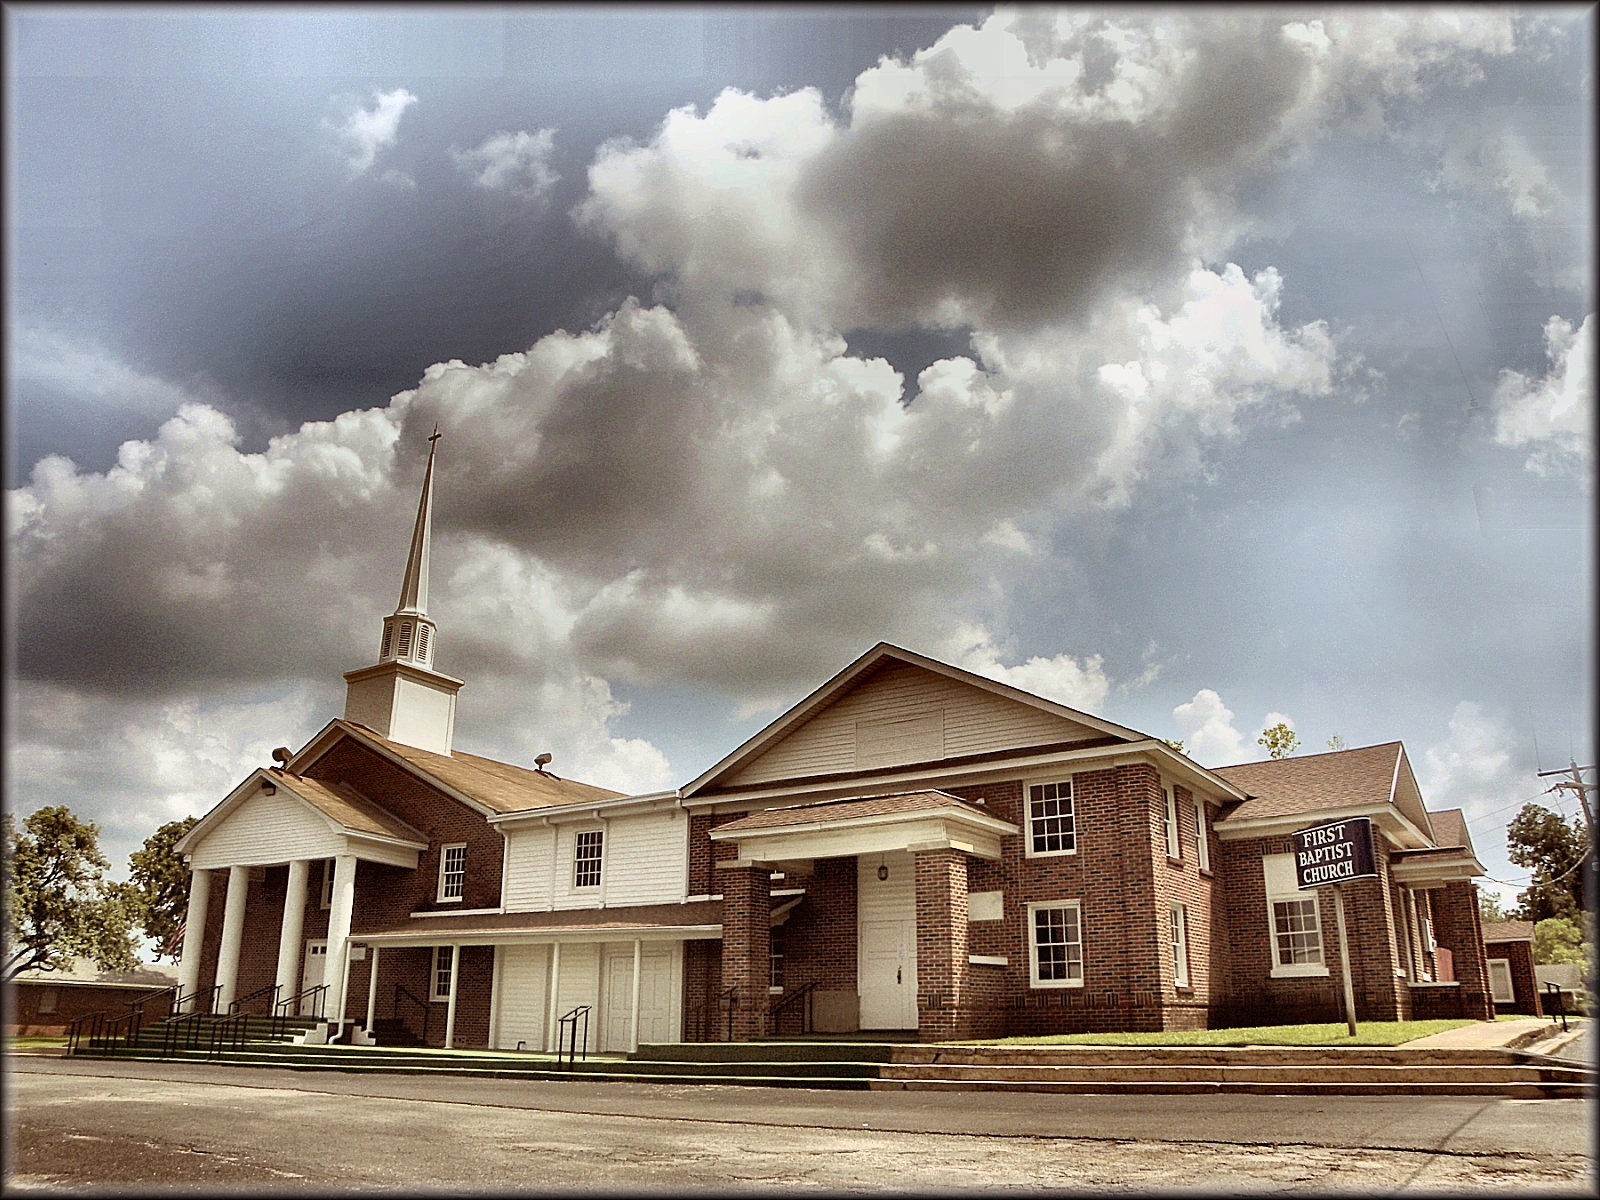 First Baptist Church of Garrison in Historic Nacogdoches County